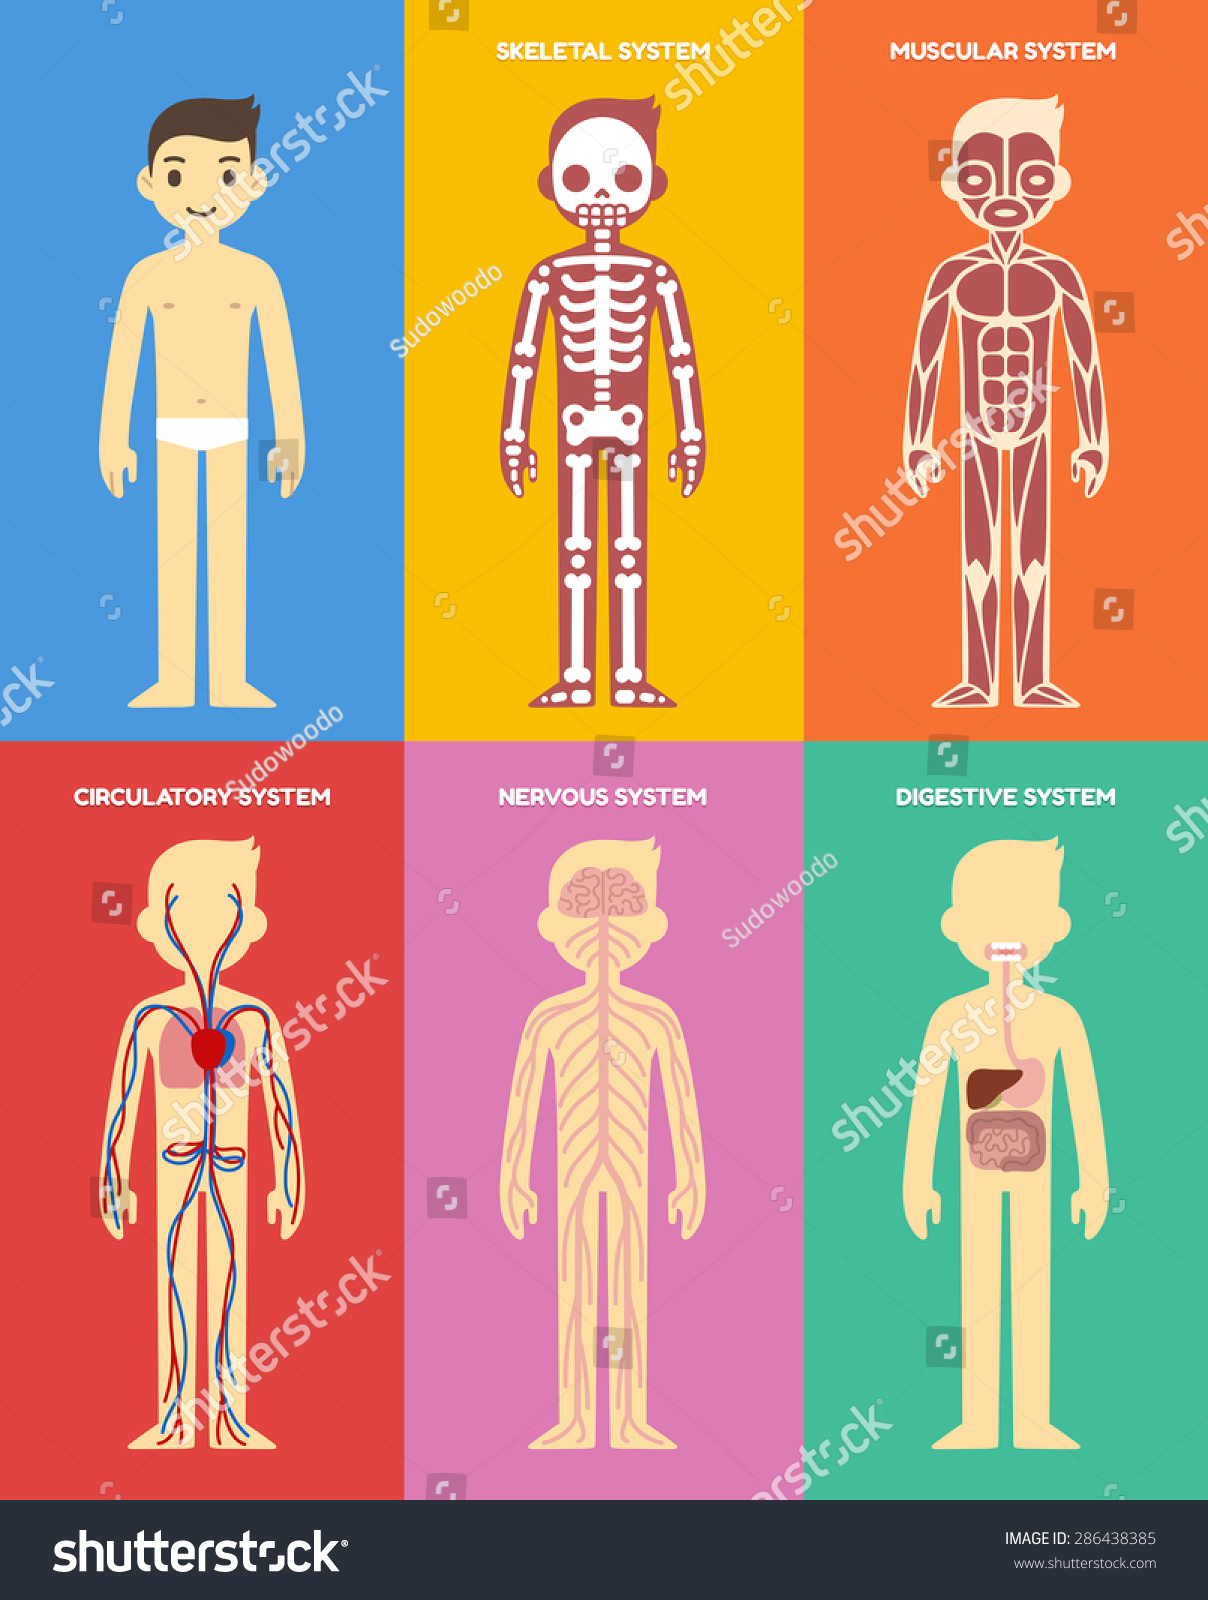 exam for muscular and nervous system The muscular system is made up of specialized cells called muscle fibers their main function is contractibility muscles, connected to bones or internal organs and blood vessels, are in charge for movement almost every movement in the body is the outcome of muscle contraction.